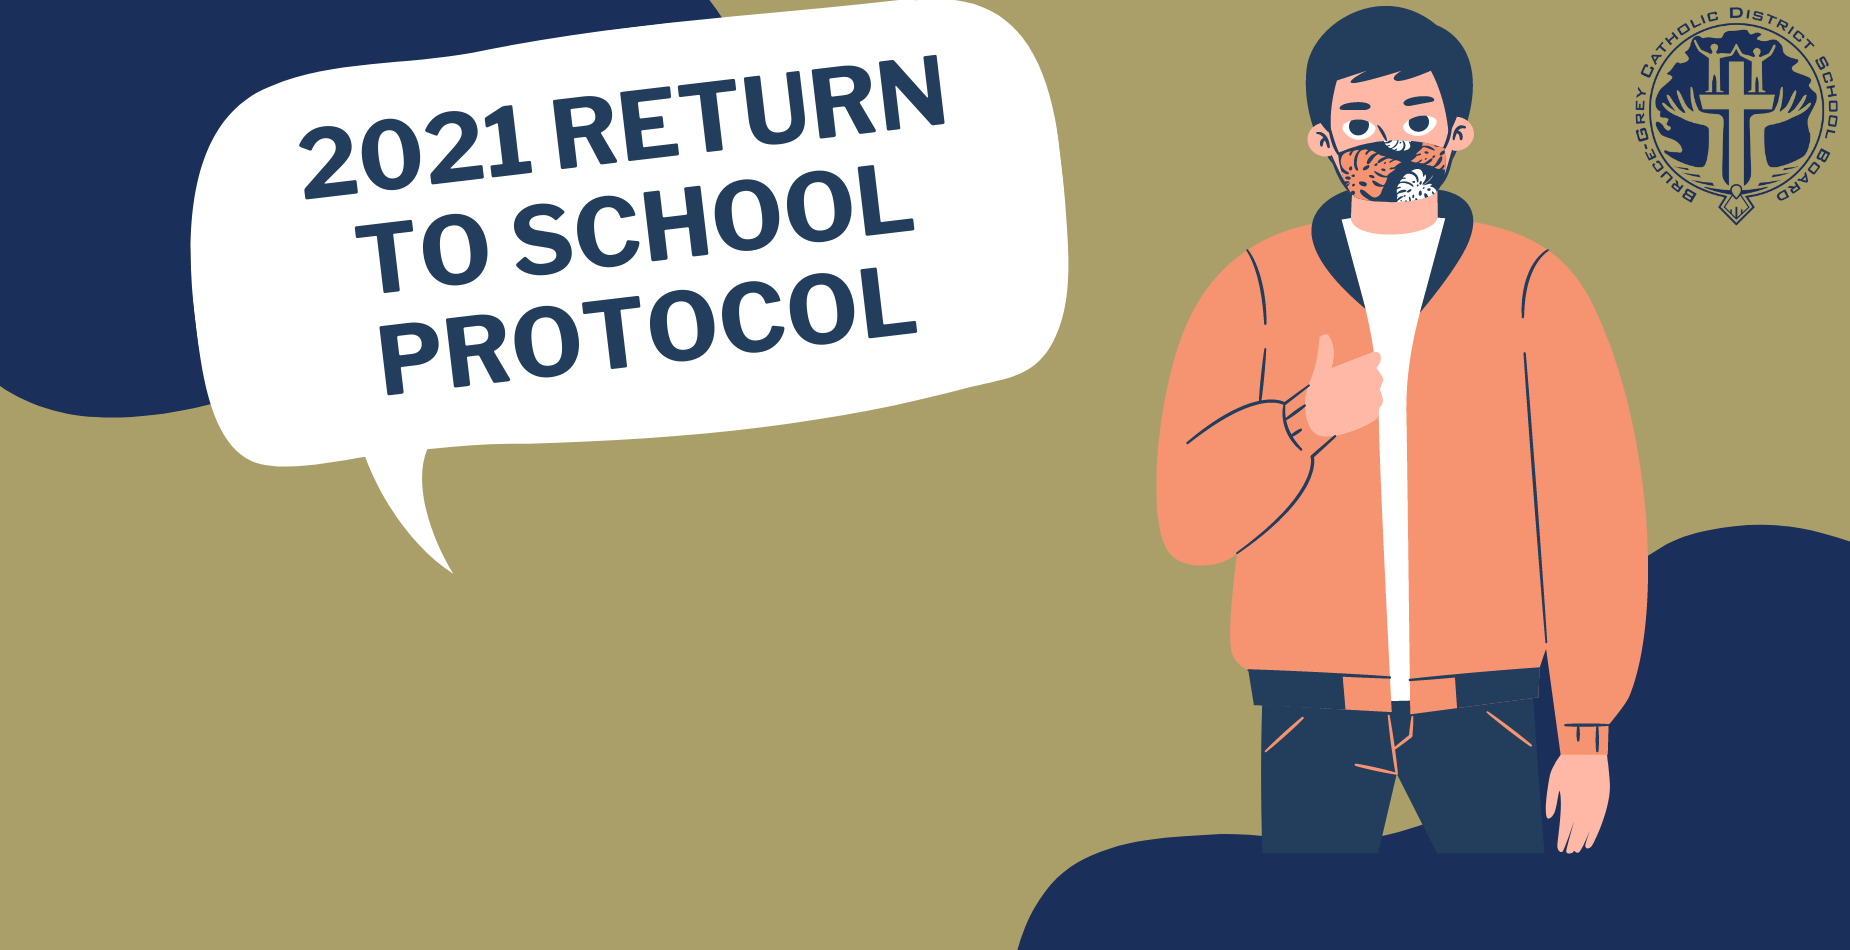 2021 return to school protocol. Image of person wearing mask giving thumbs up